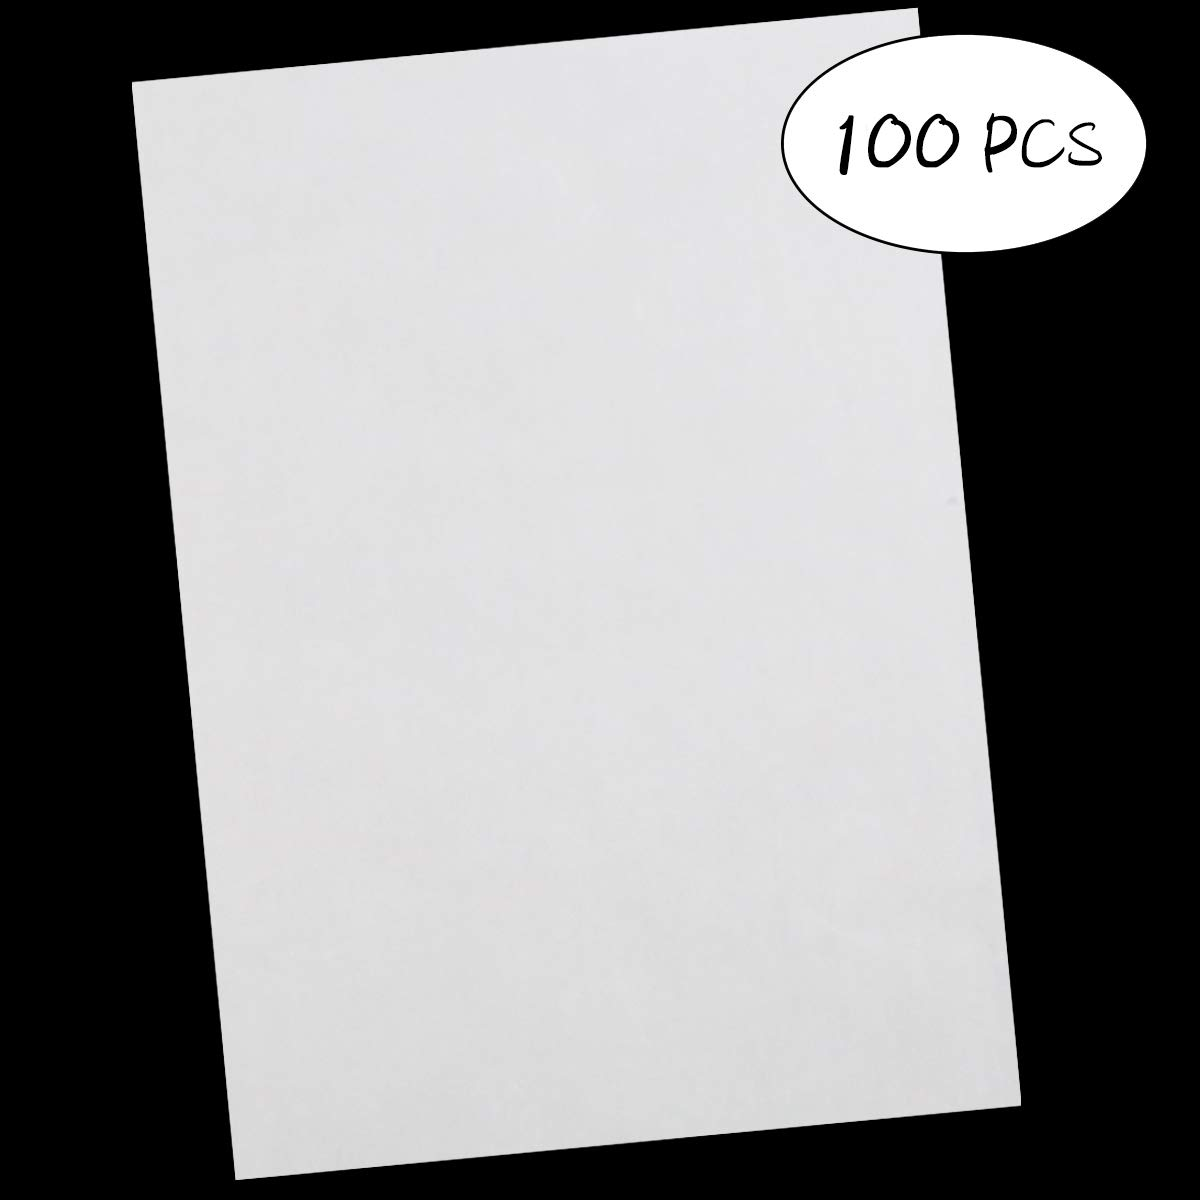 """100 Pcs Carbon Transfer Paper Tracing Paper 11.7""""×8.3"""" for Transfer Pattern on Wood, Paper, Canvas (White)"""